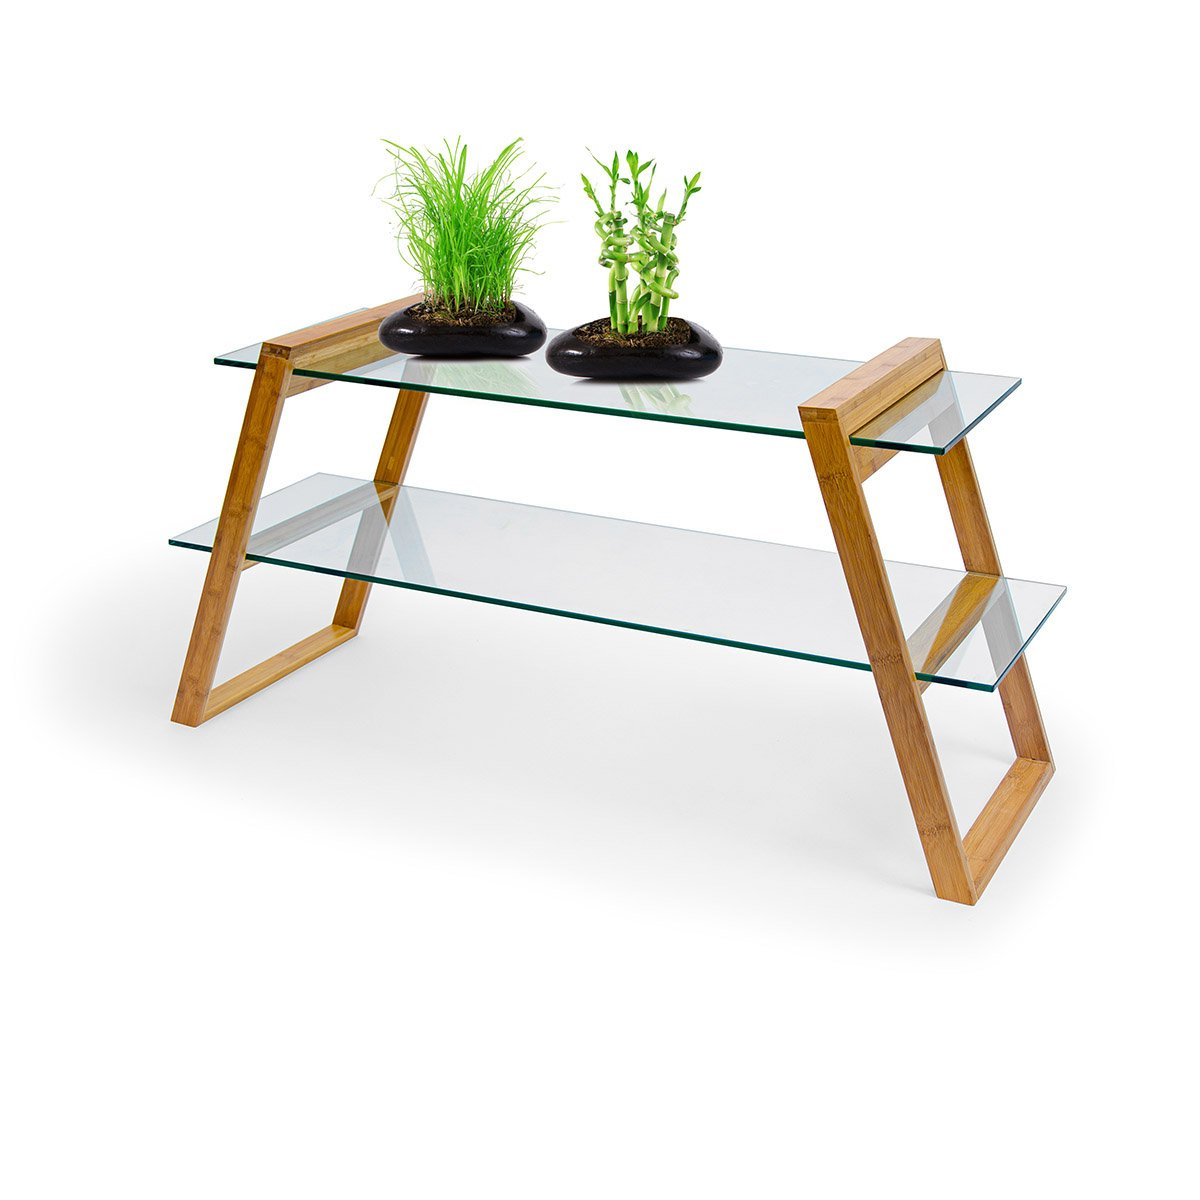 Relaxdays Mukai Coffee Table, Large Glass & Bamboo Sofa Table With 2 inside Most Recently Released Mukai 5 Piece Dining Sets